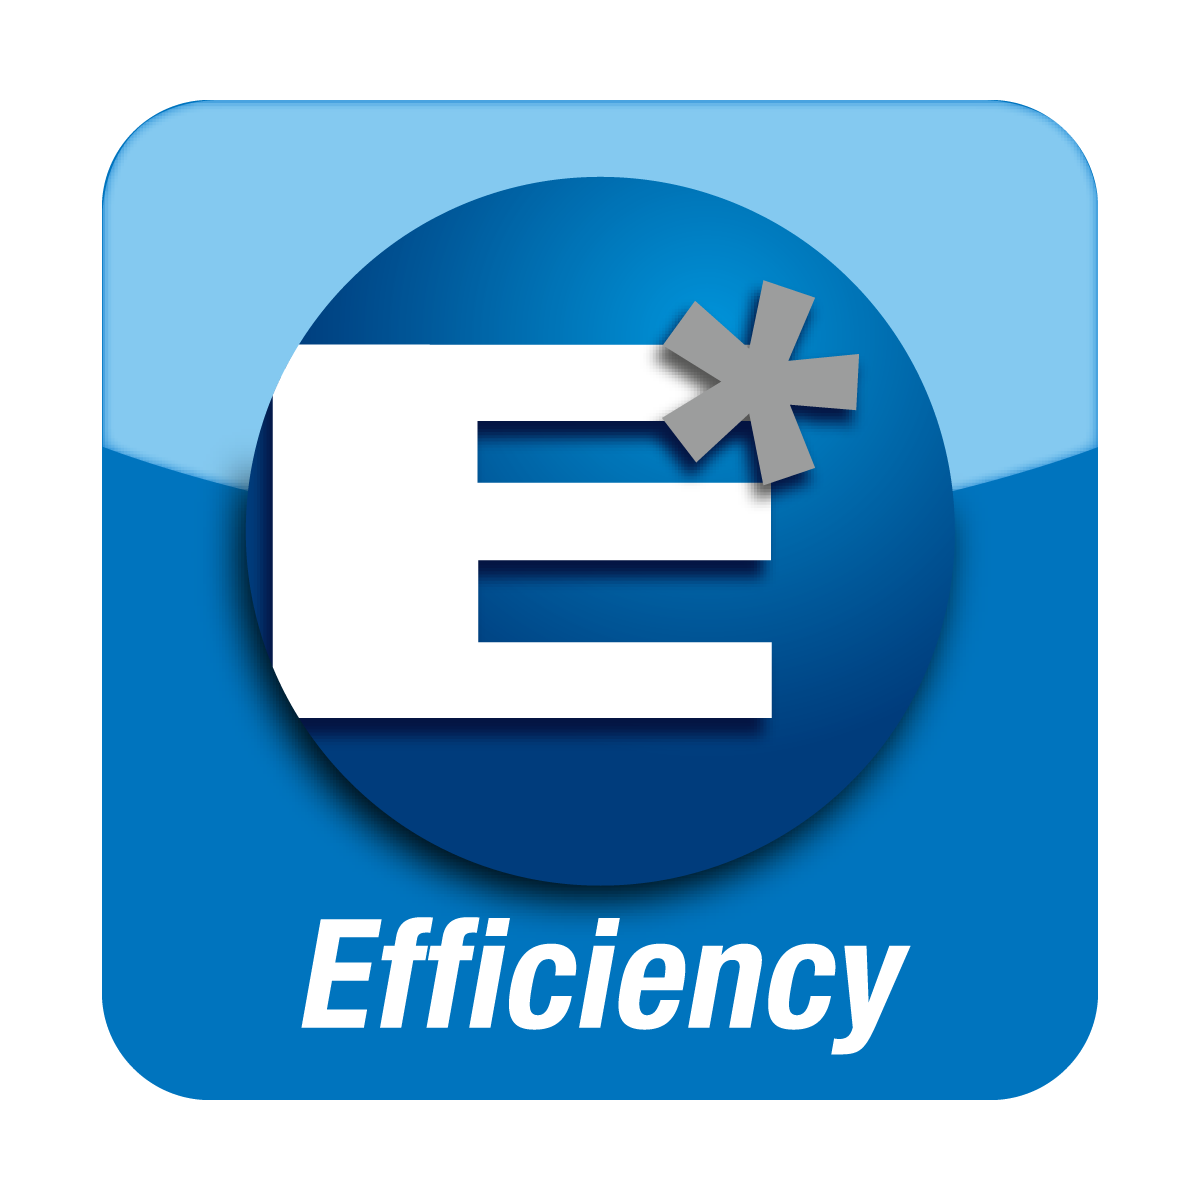 efficiency icon png - photo #41